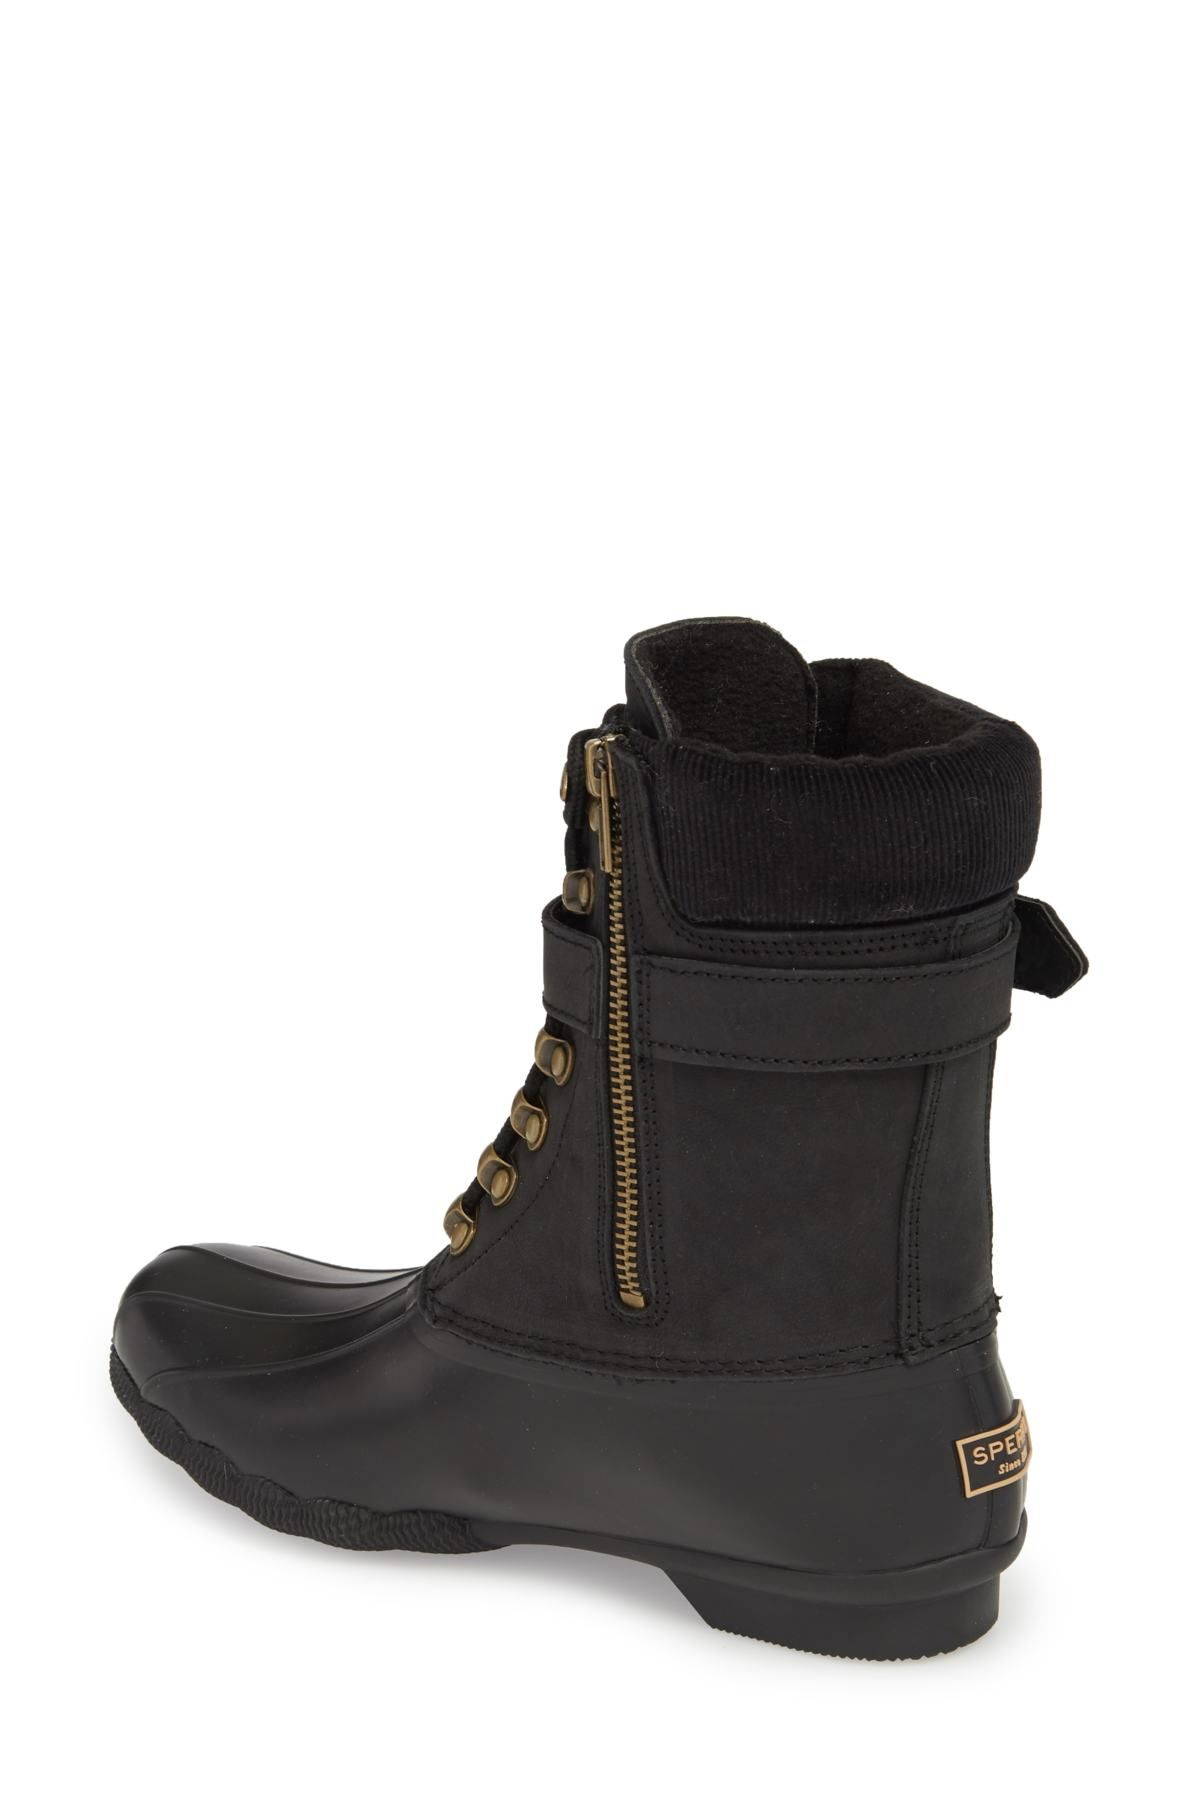 Boots, Duck boots, Waterproof boots